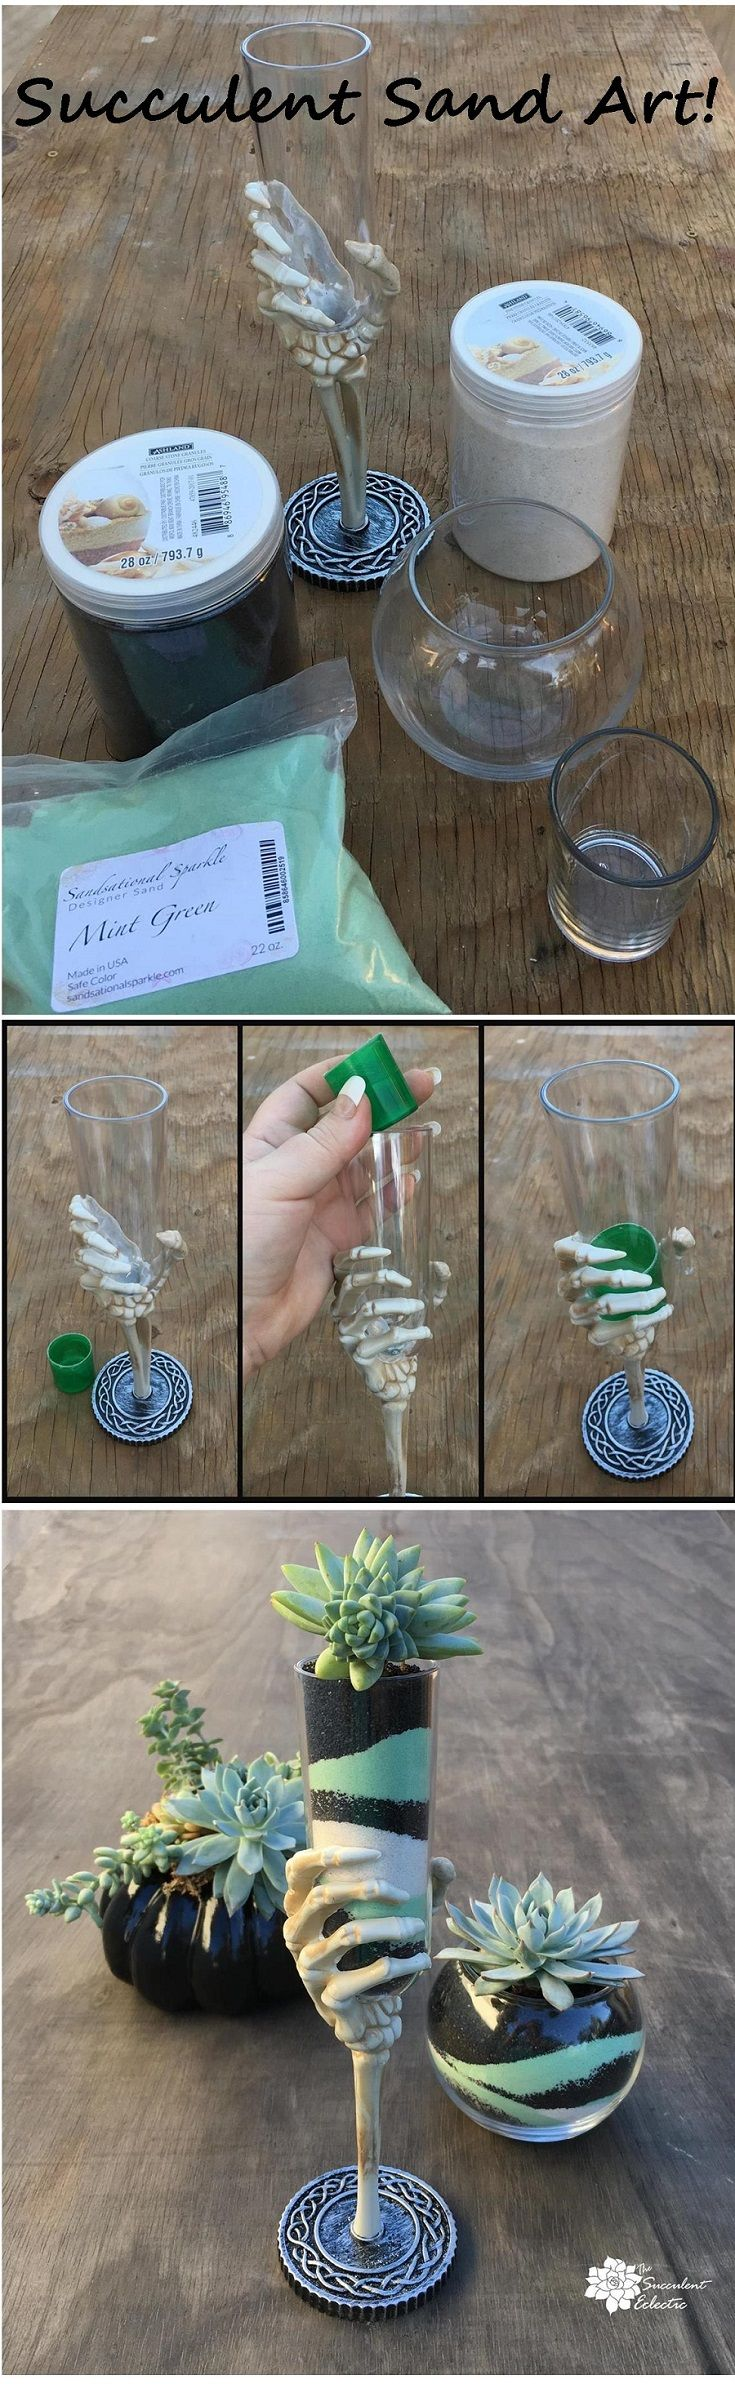 Diy succulent sand art simple way to turn cheap glass container into diy succulent sand art simple way to turn cheap glass container into a ooak beauty simple succulent diys pinterest sand art and cacti solutioingenieria Choice Image